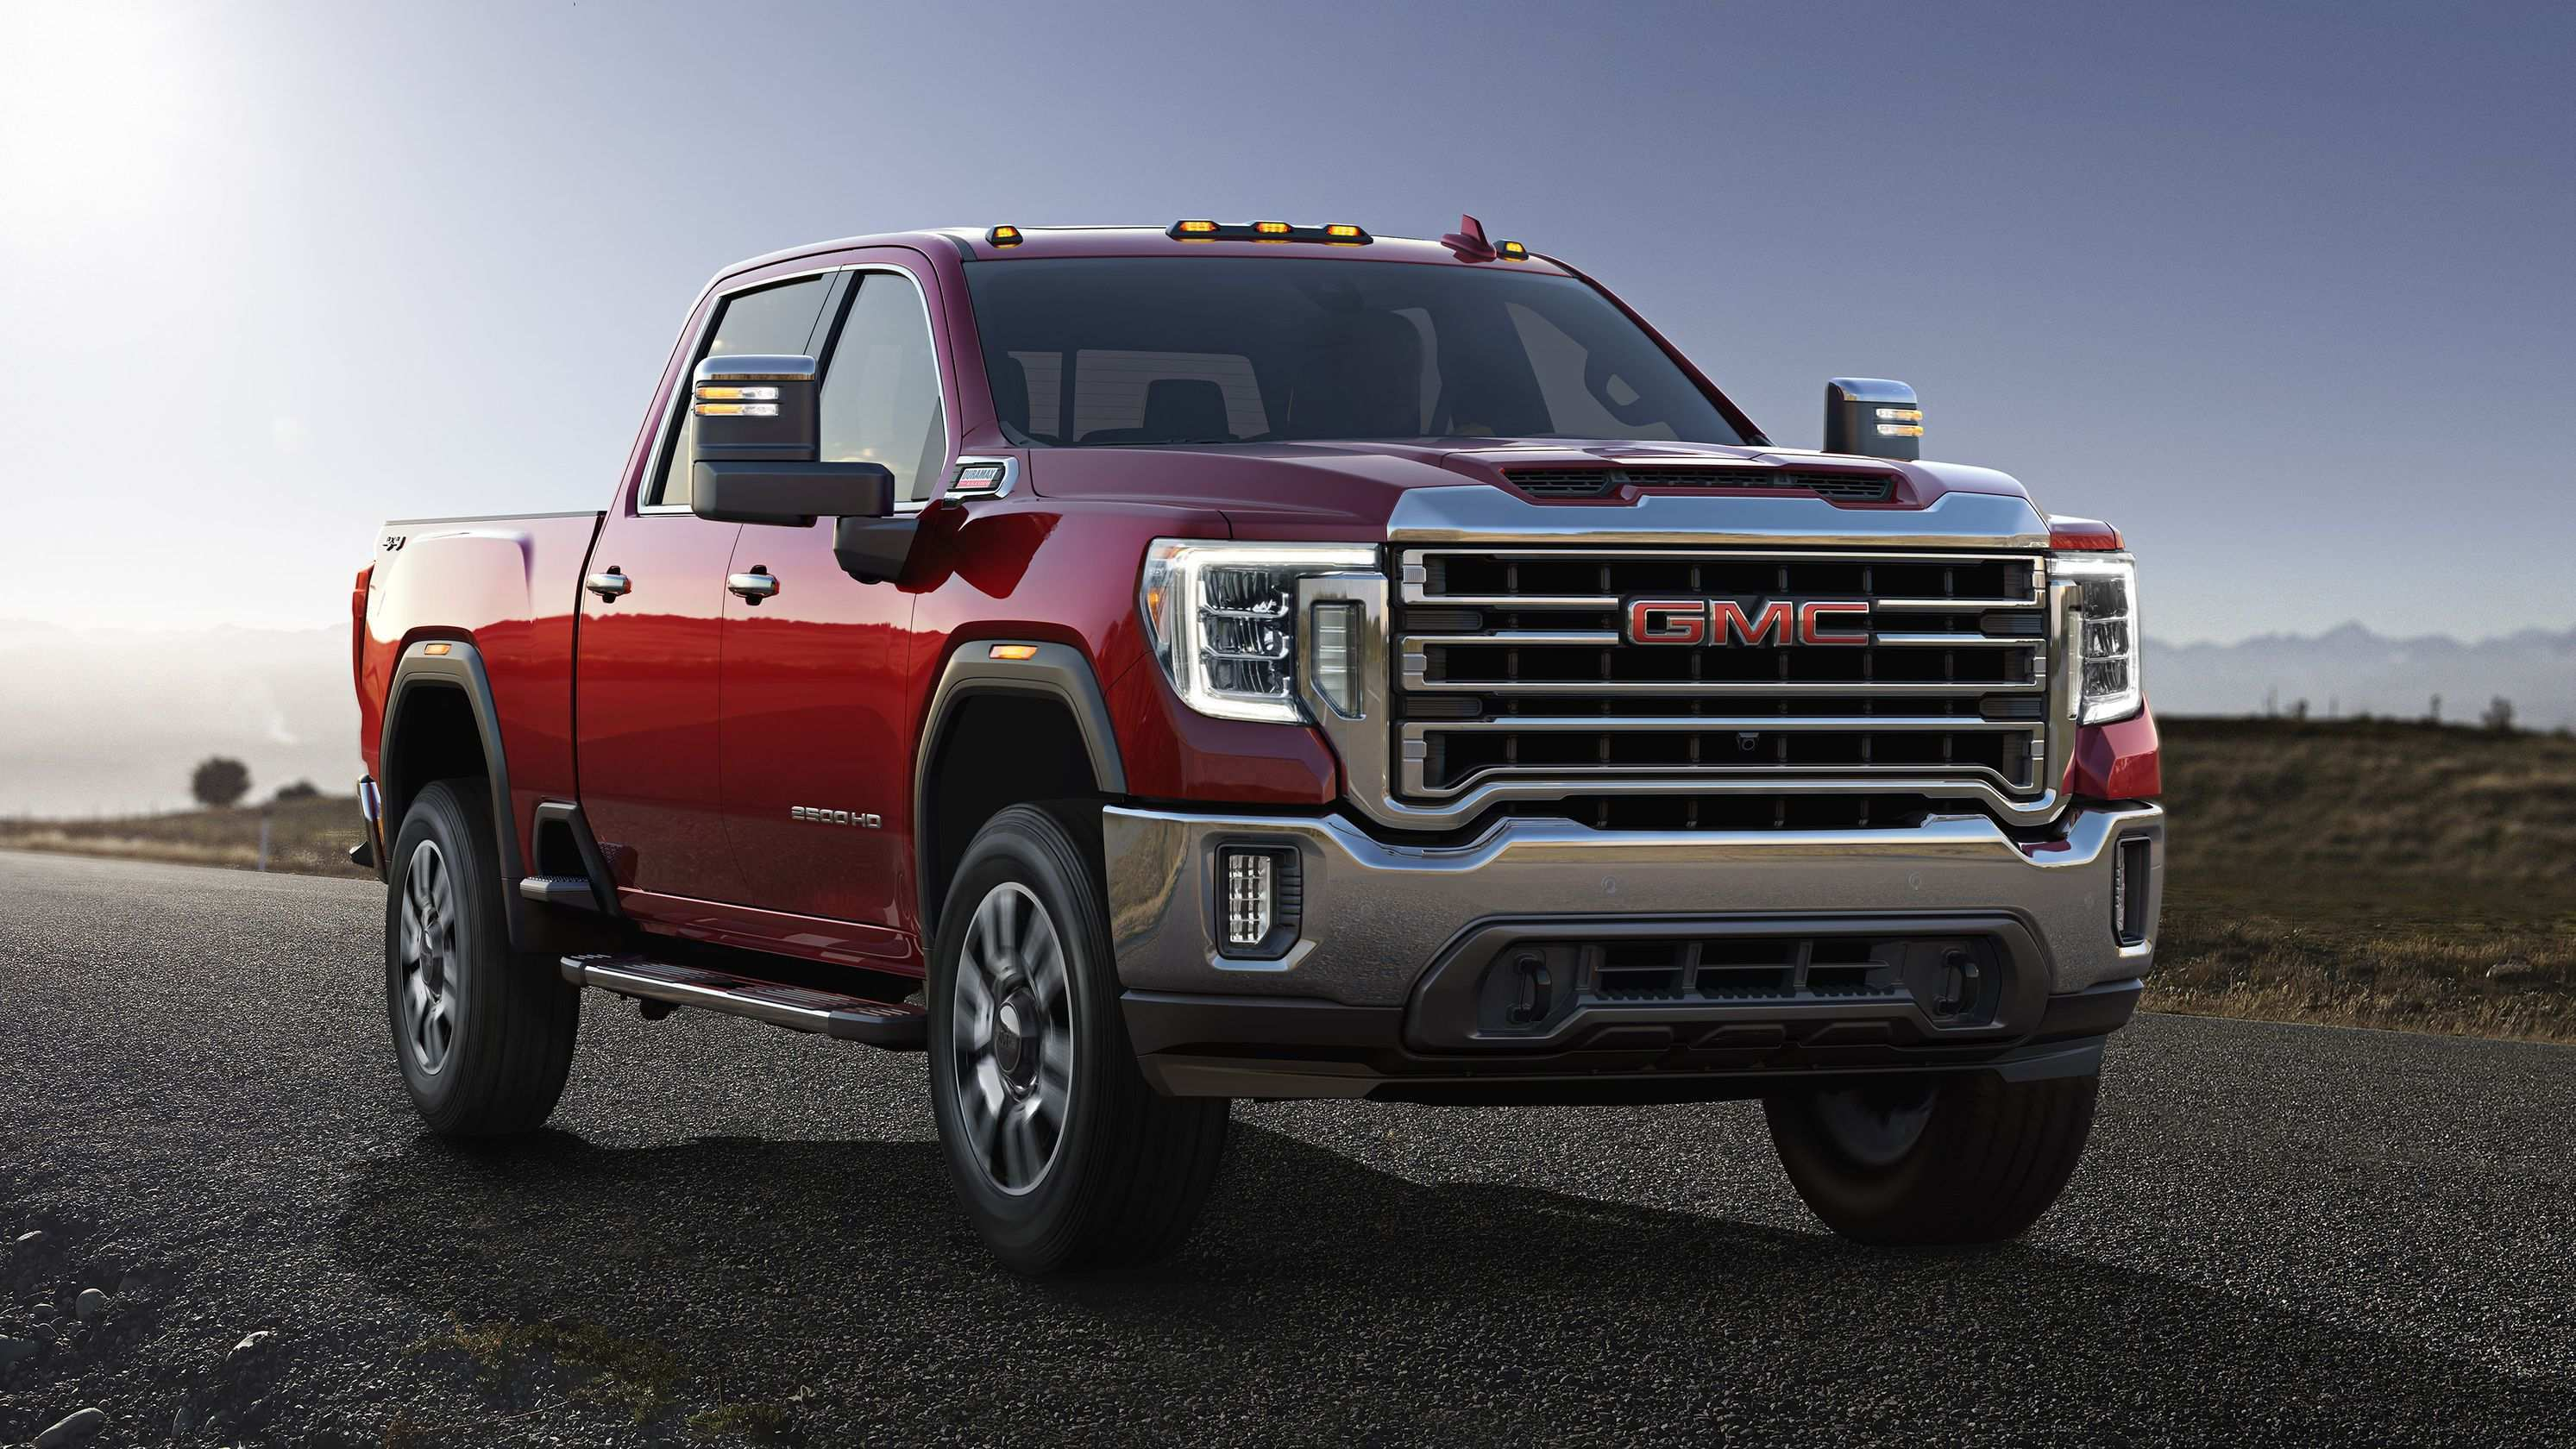 29 All New 2020 GMC Sierra 1500 Review by 2020 GMC Sierra 1500